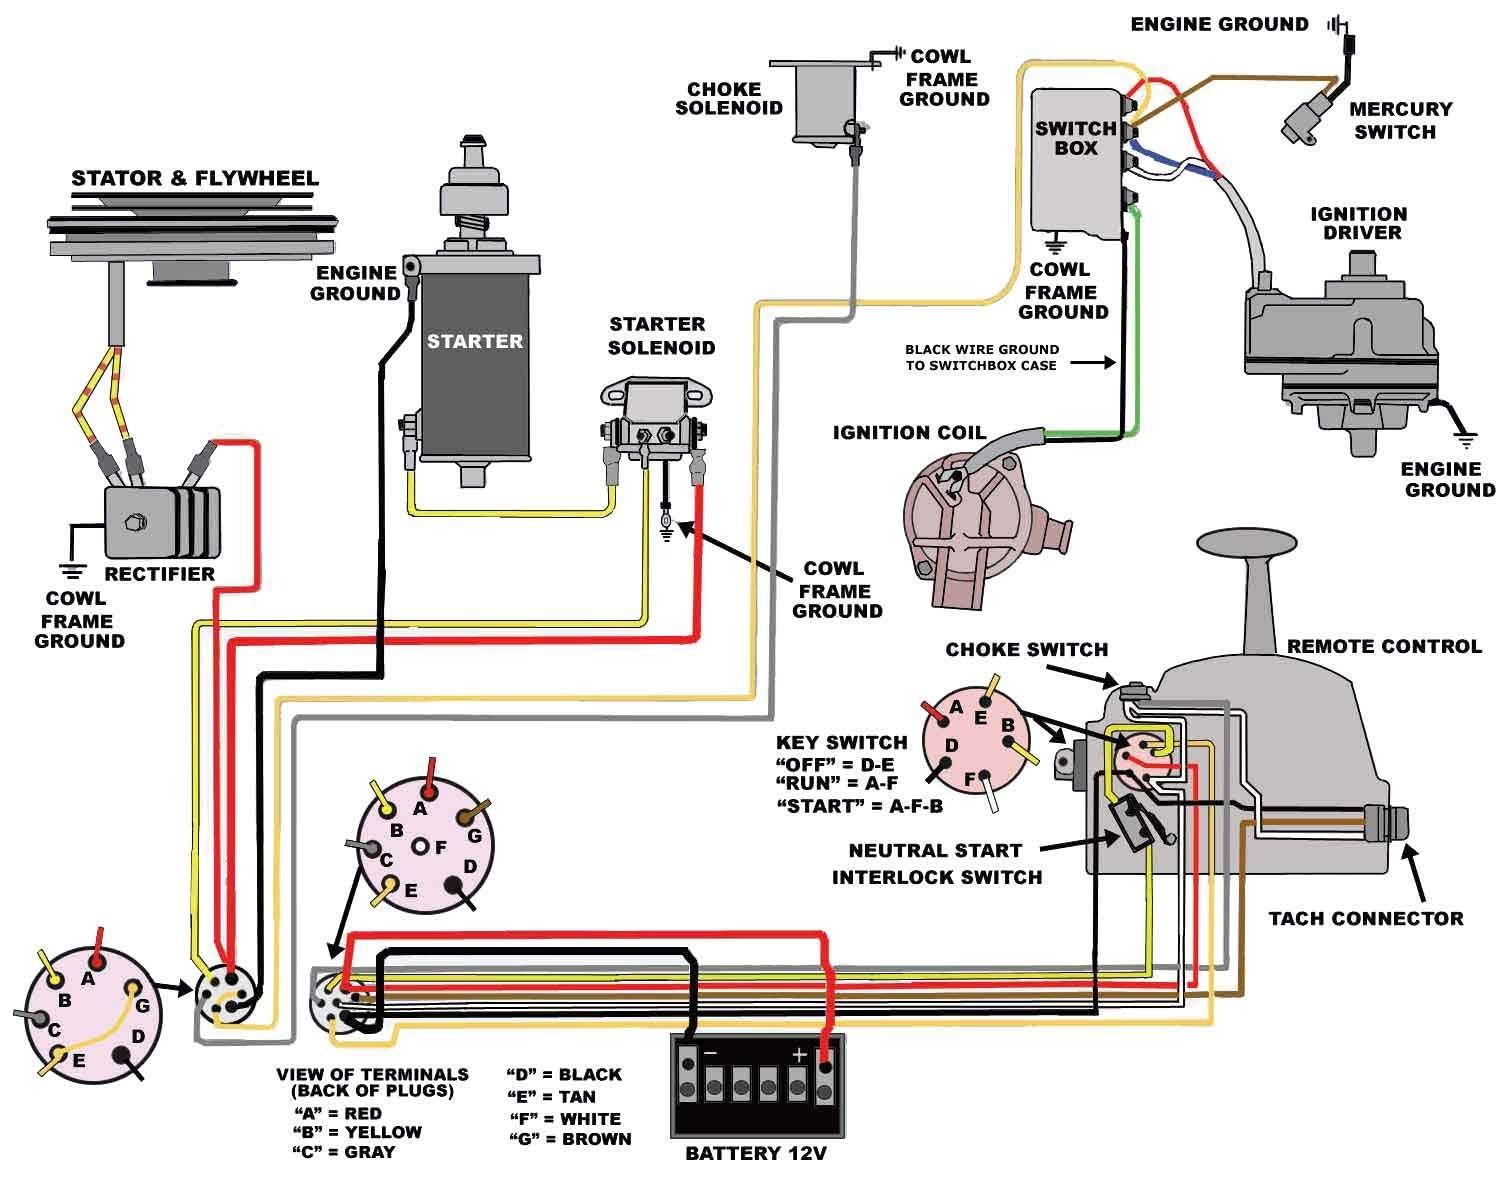 Mercruiser Ignition Switch Wiring Diagram Motherwill for